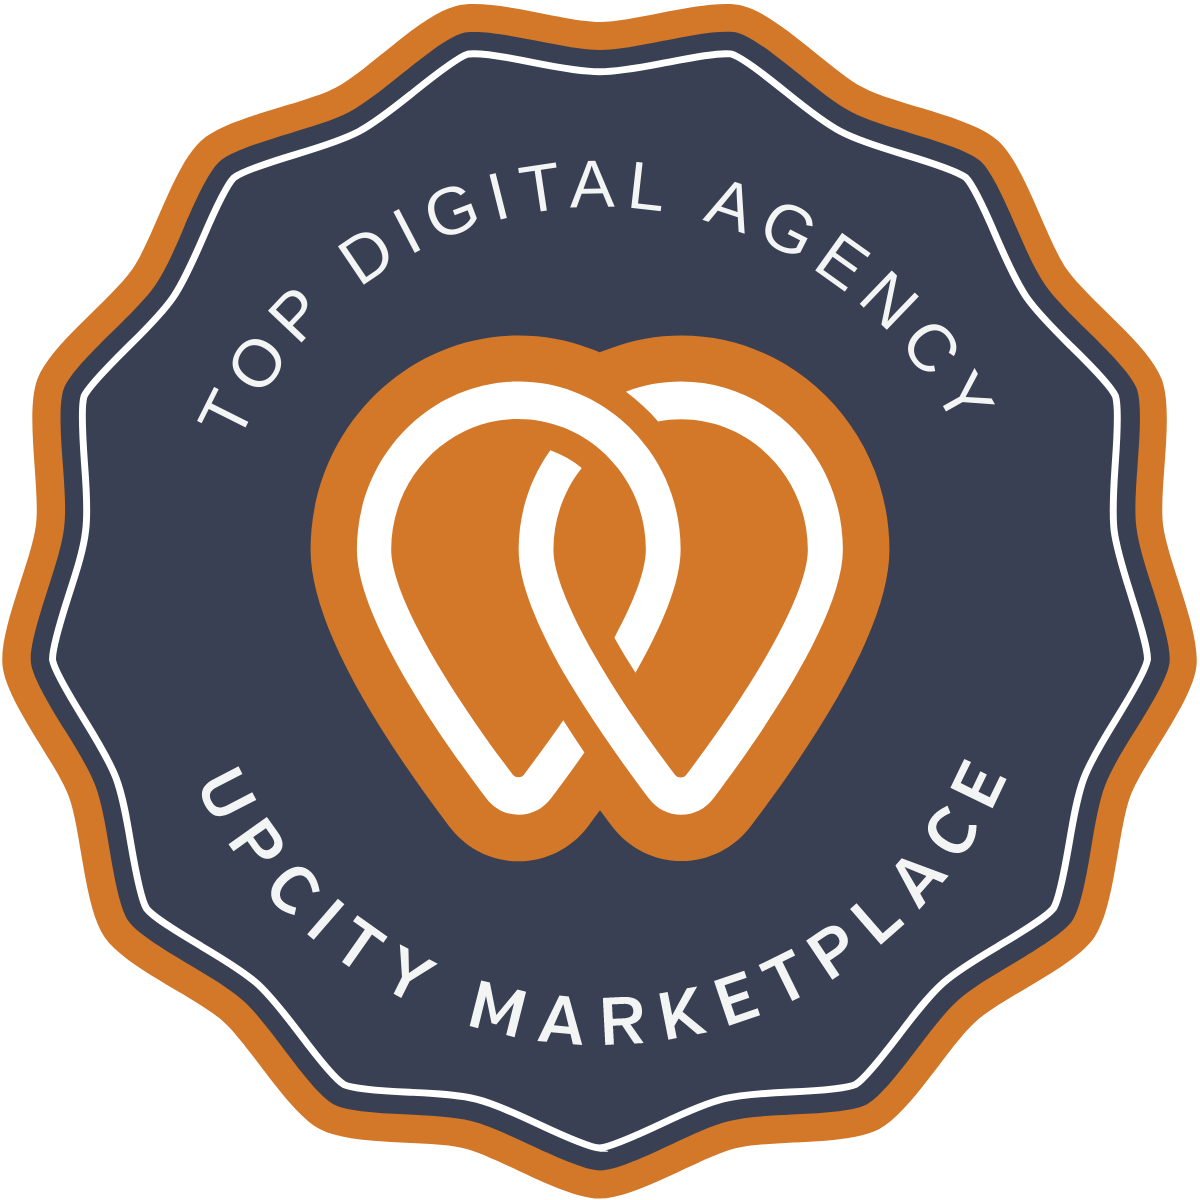 Upcity Top Digital Marketing Firm